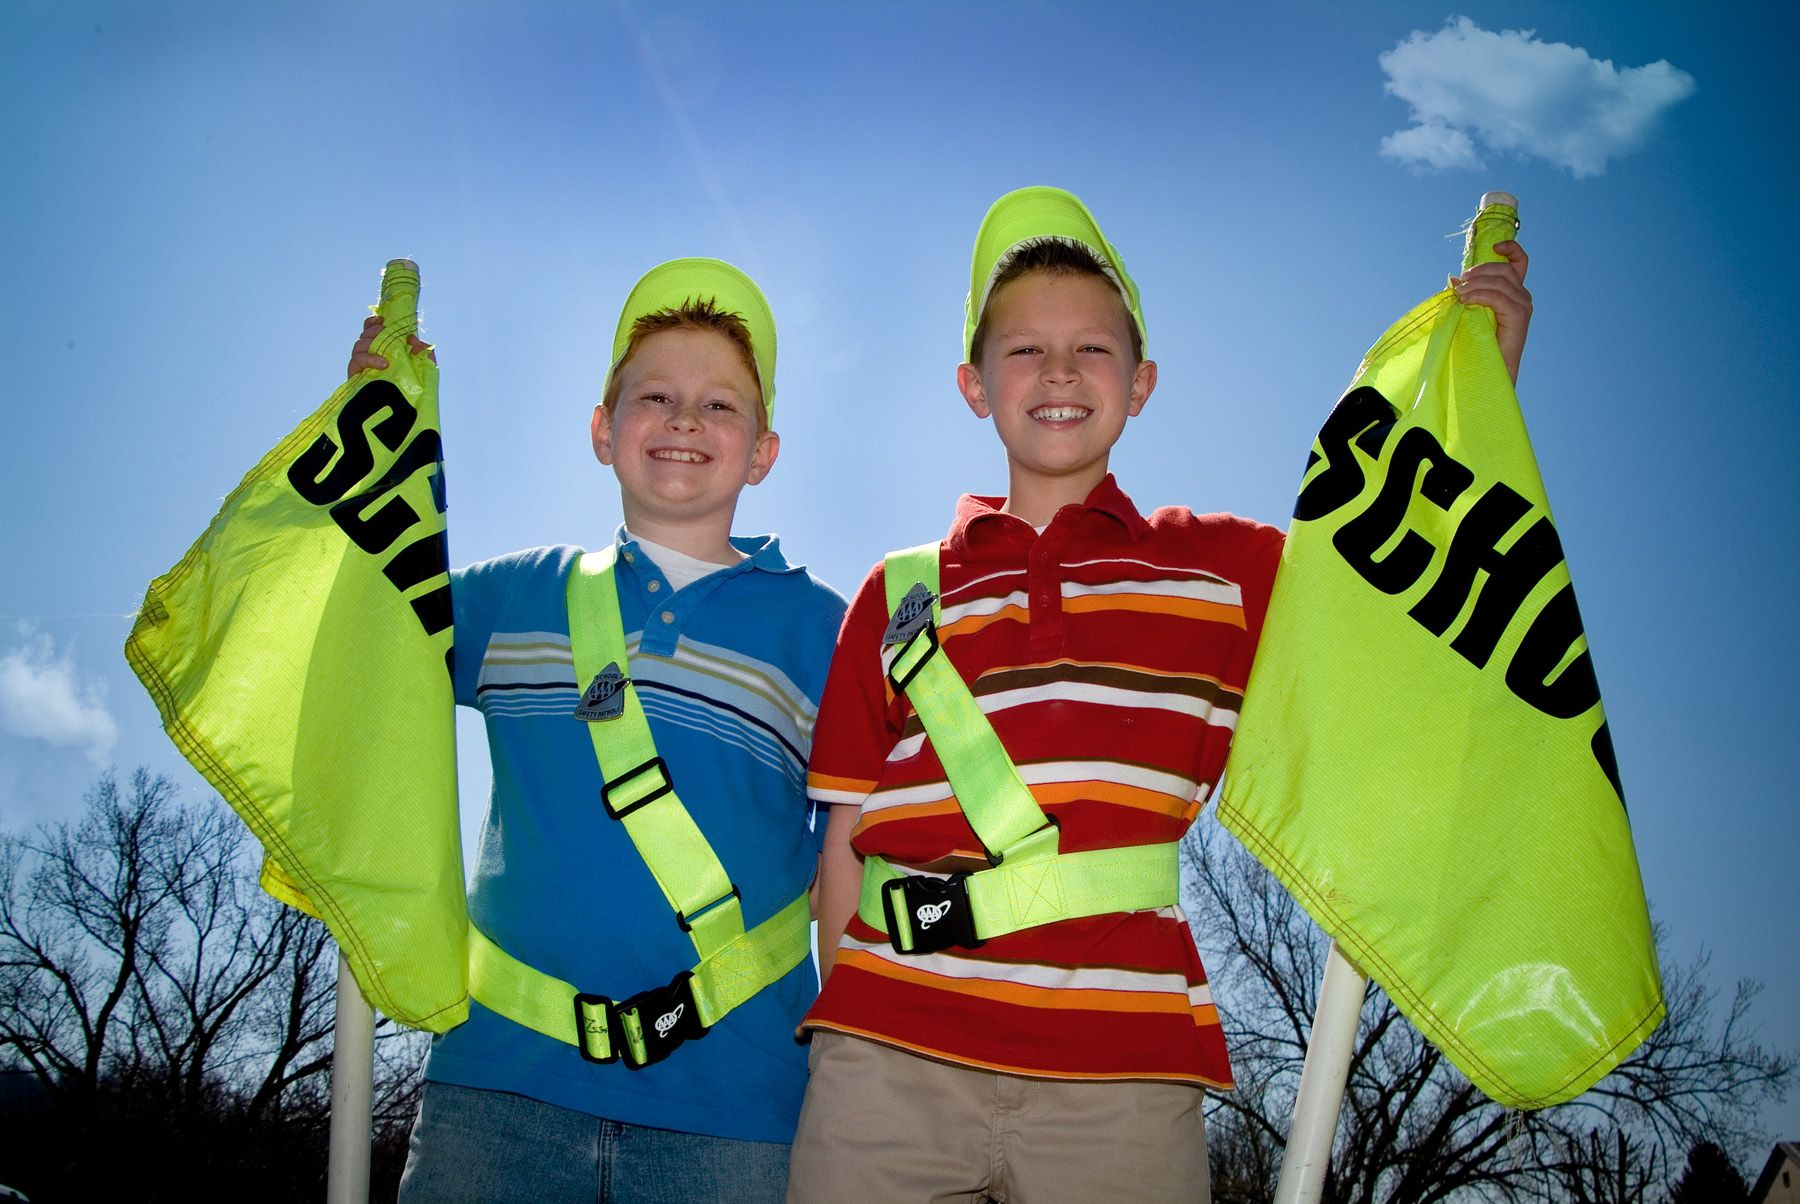 AAA's School Safety Patrol Saving Lives for 95 Years